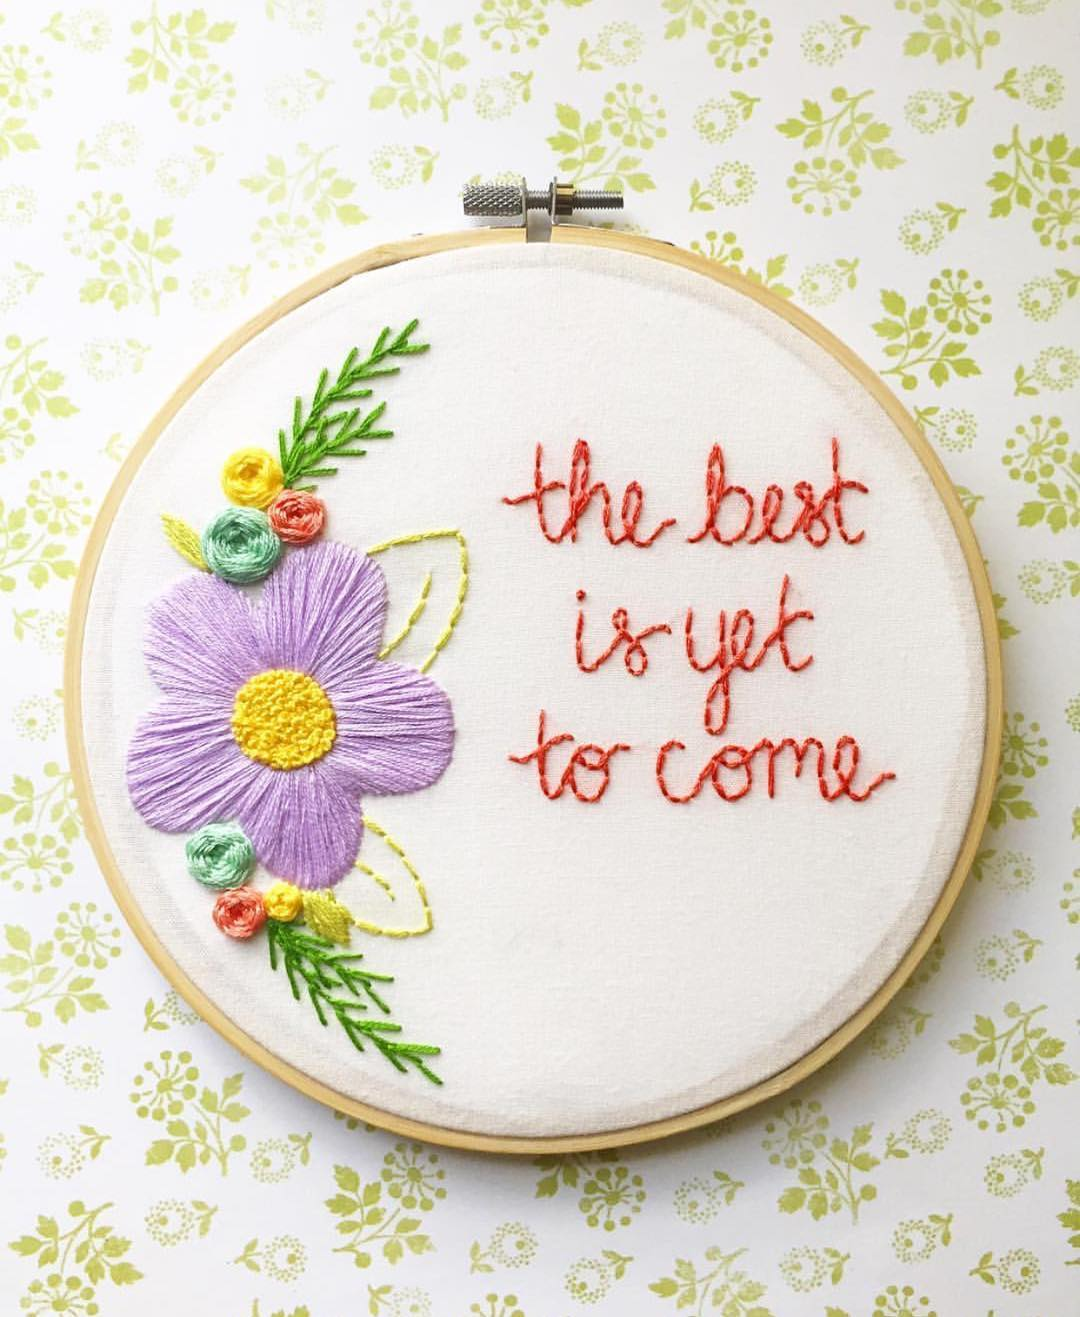 Bright sunny embroidery to melt away the winter blues. Includes spring flowers and animals.